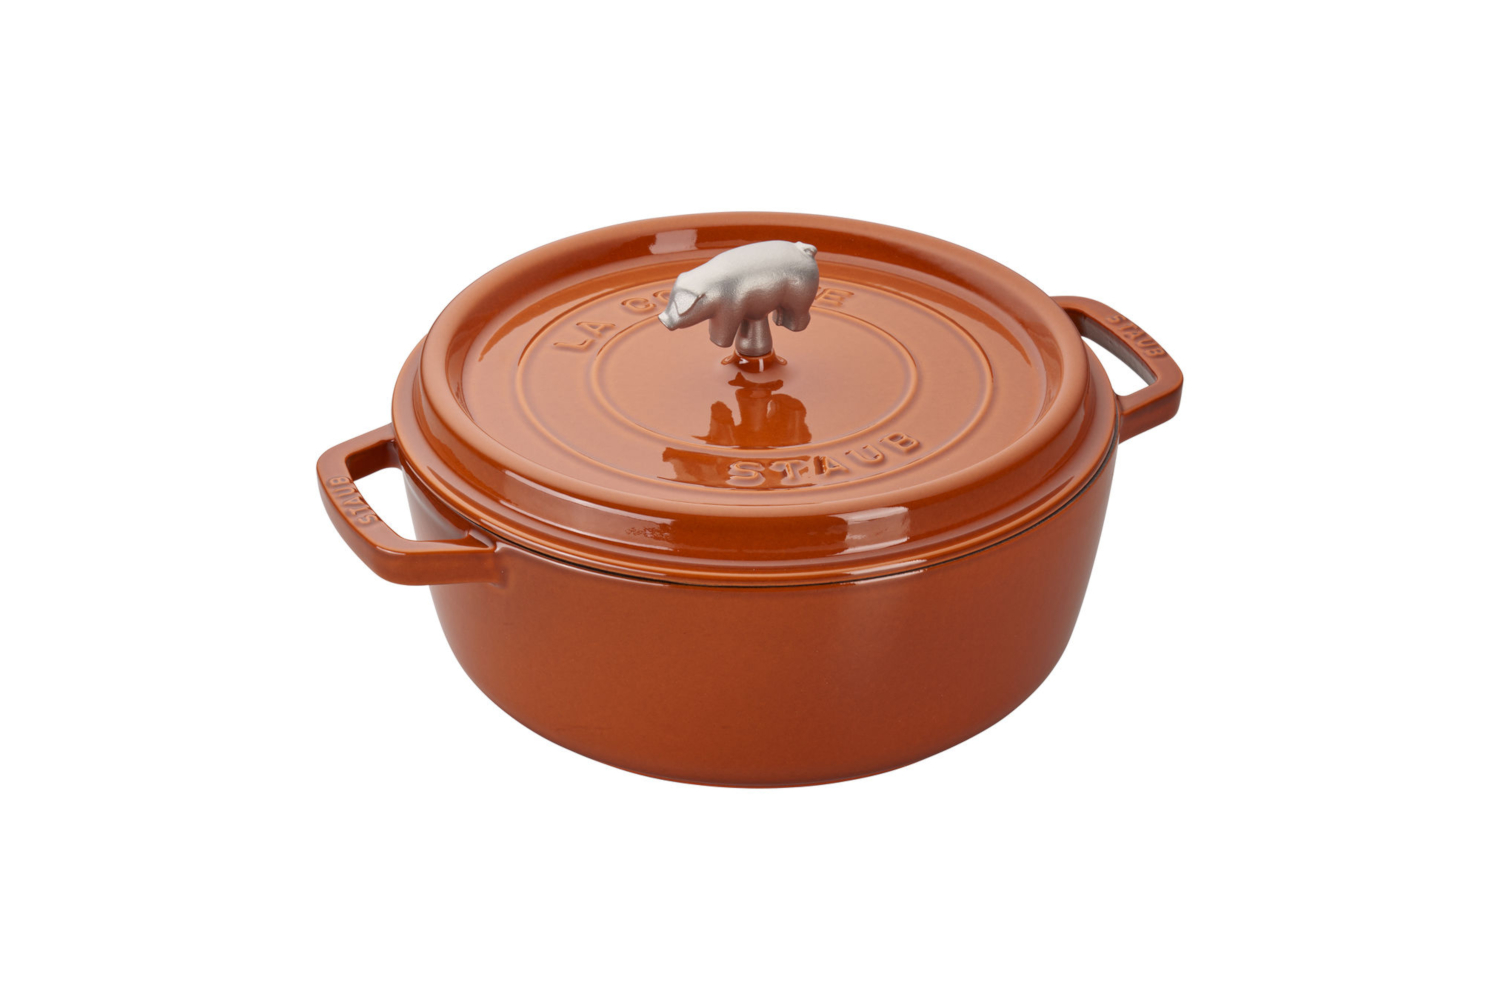 Staub Cast Iron 6 qt. Cochon Shallow Wide Round Cocotte - Burnt Orange